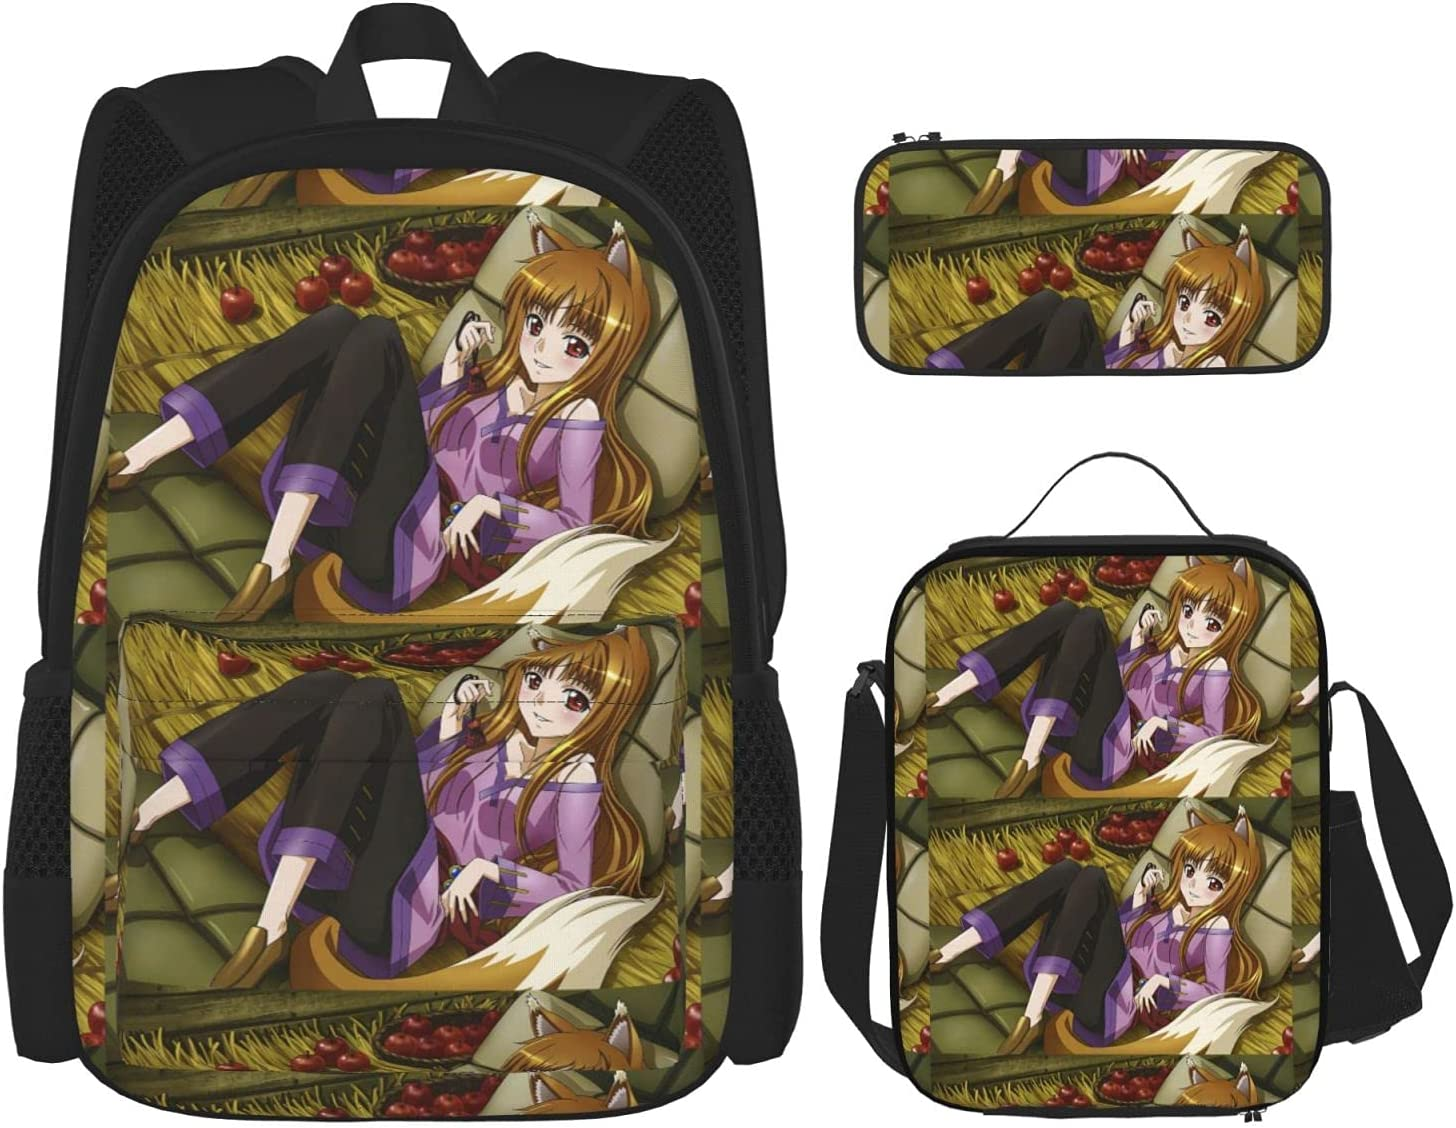 Spice and Wolf Chibi Holo Anime Set Backpack 3 Ranking integrated 1st place OFFicial shop + Piece